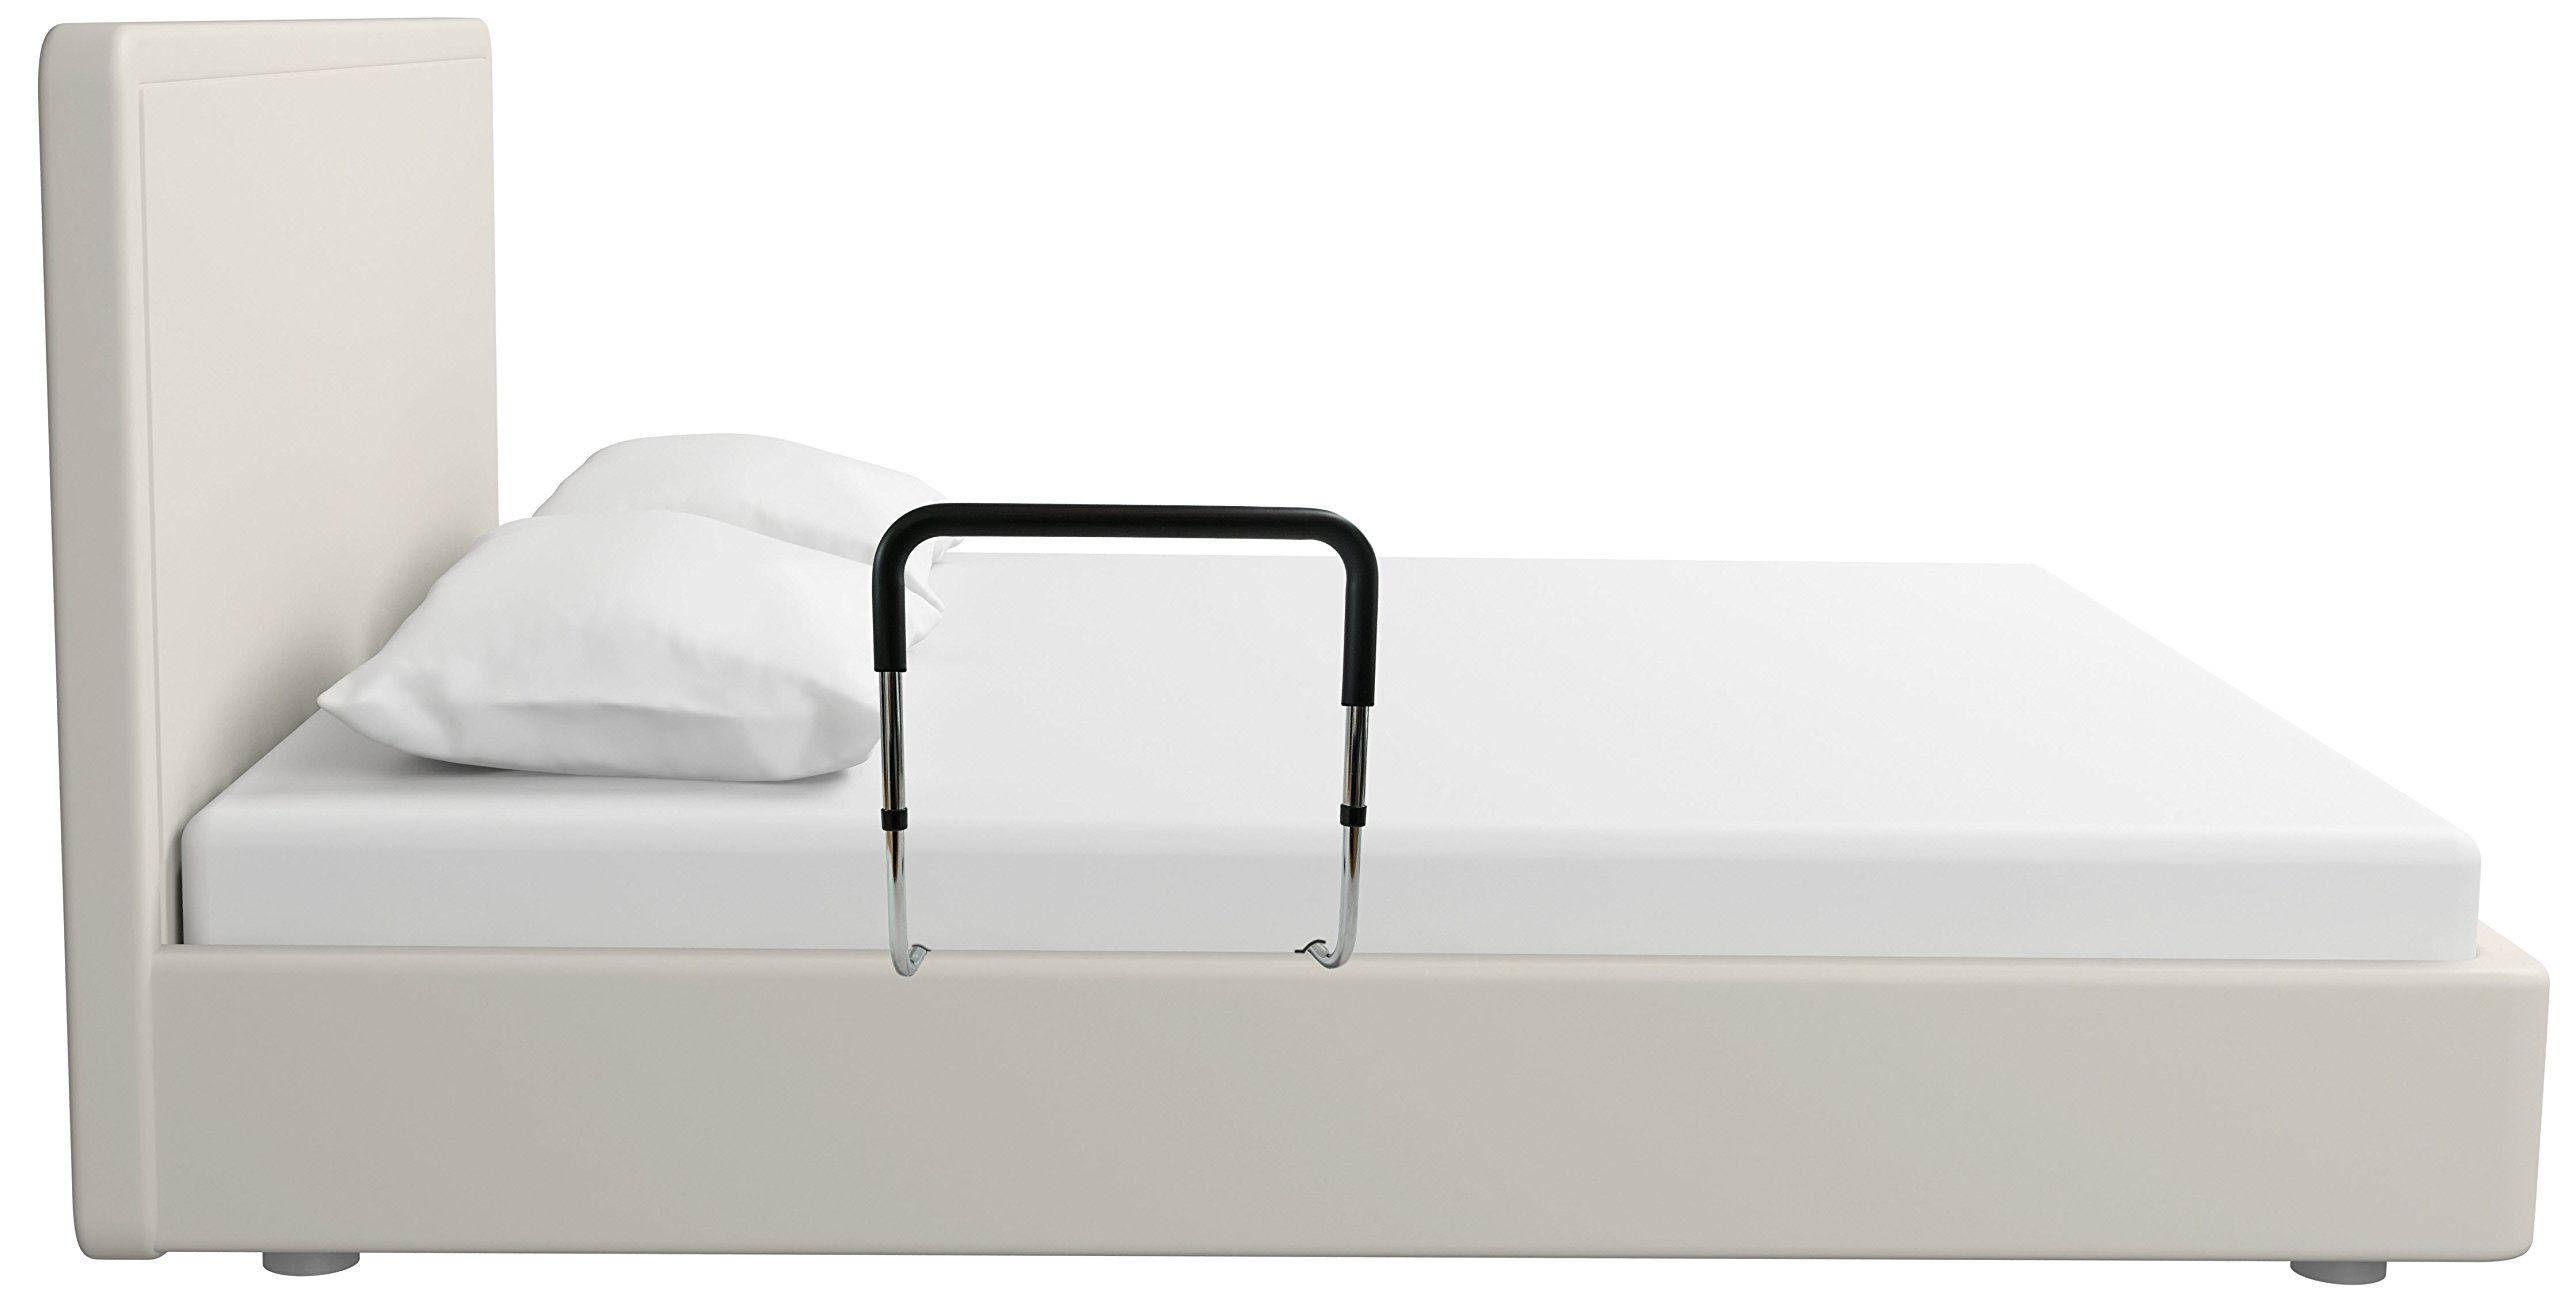 Bed Support Rail - Medical Bed Support Assist Grab Bar for Disabled, Elderly, Adults, and Children